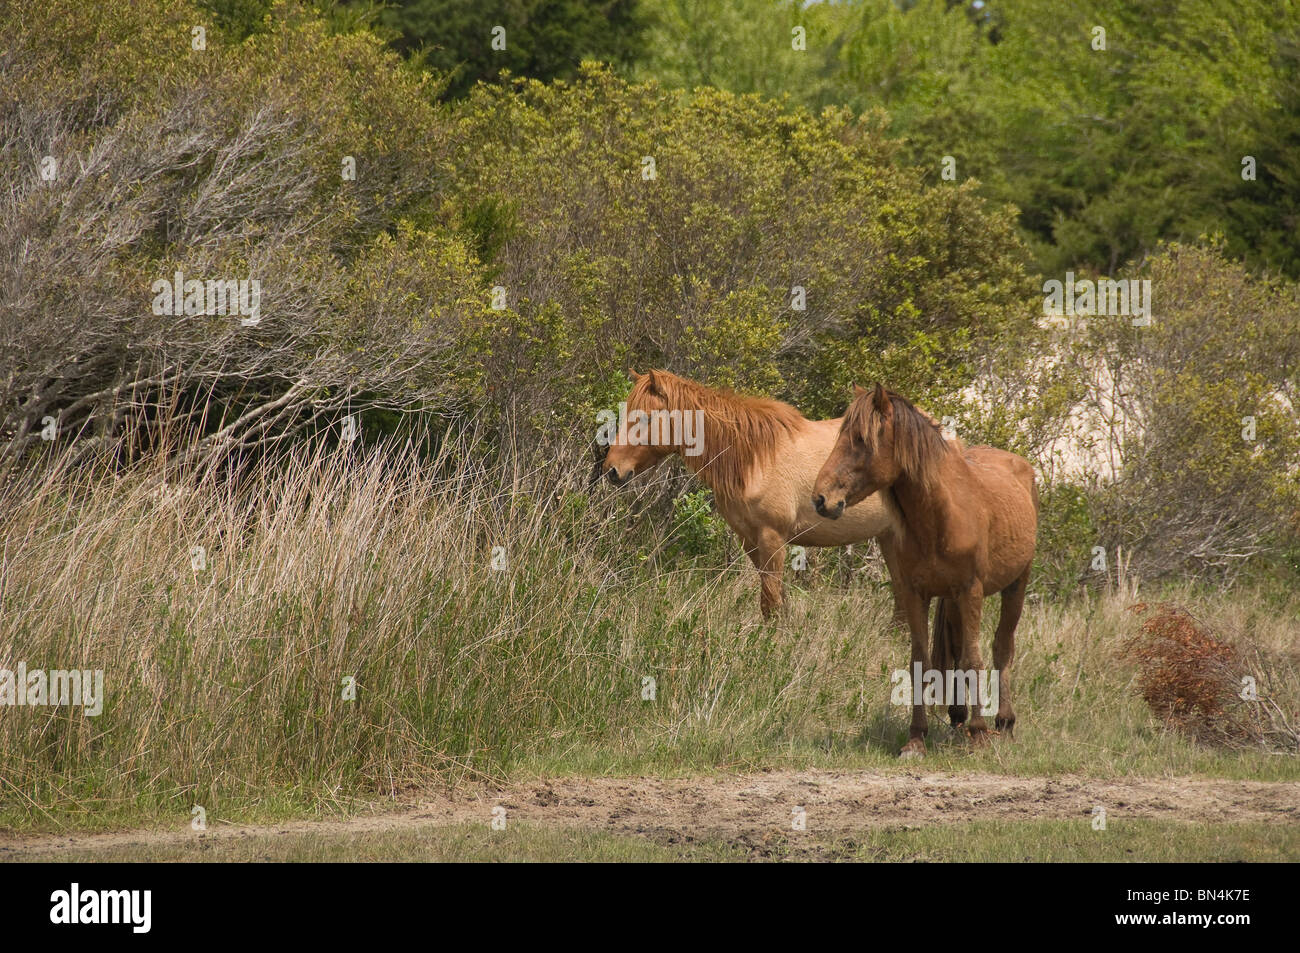 Wild Spanish Mustang horses standing near wooded area on the outer banks of North Carolina USA - Stock Image